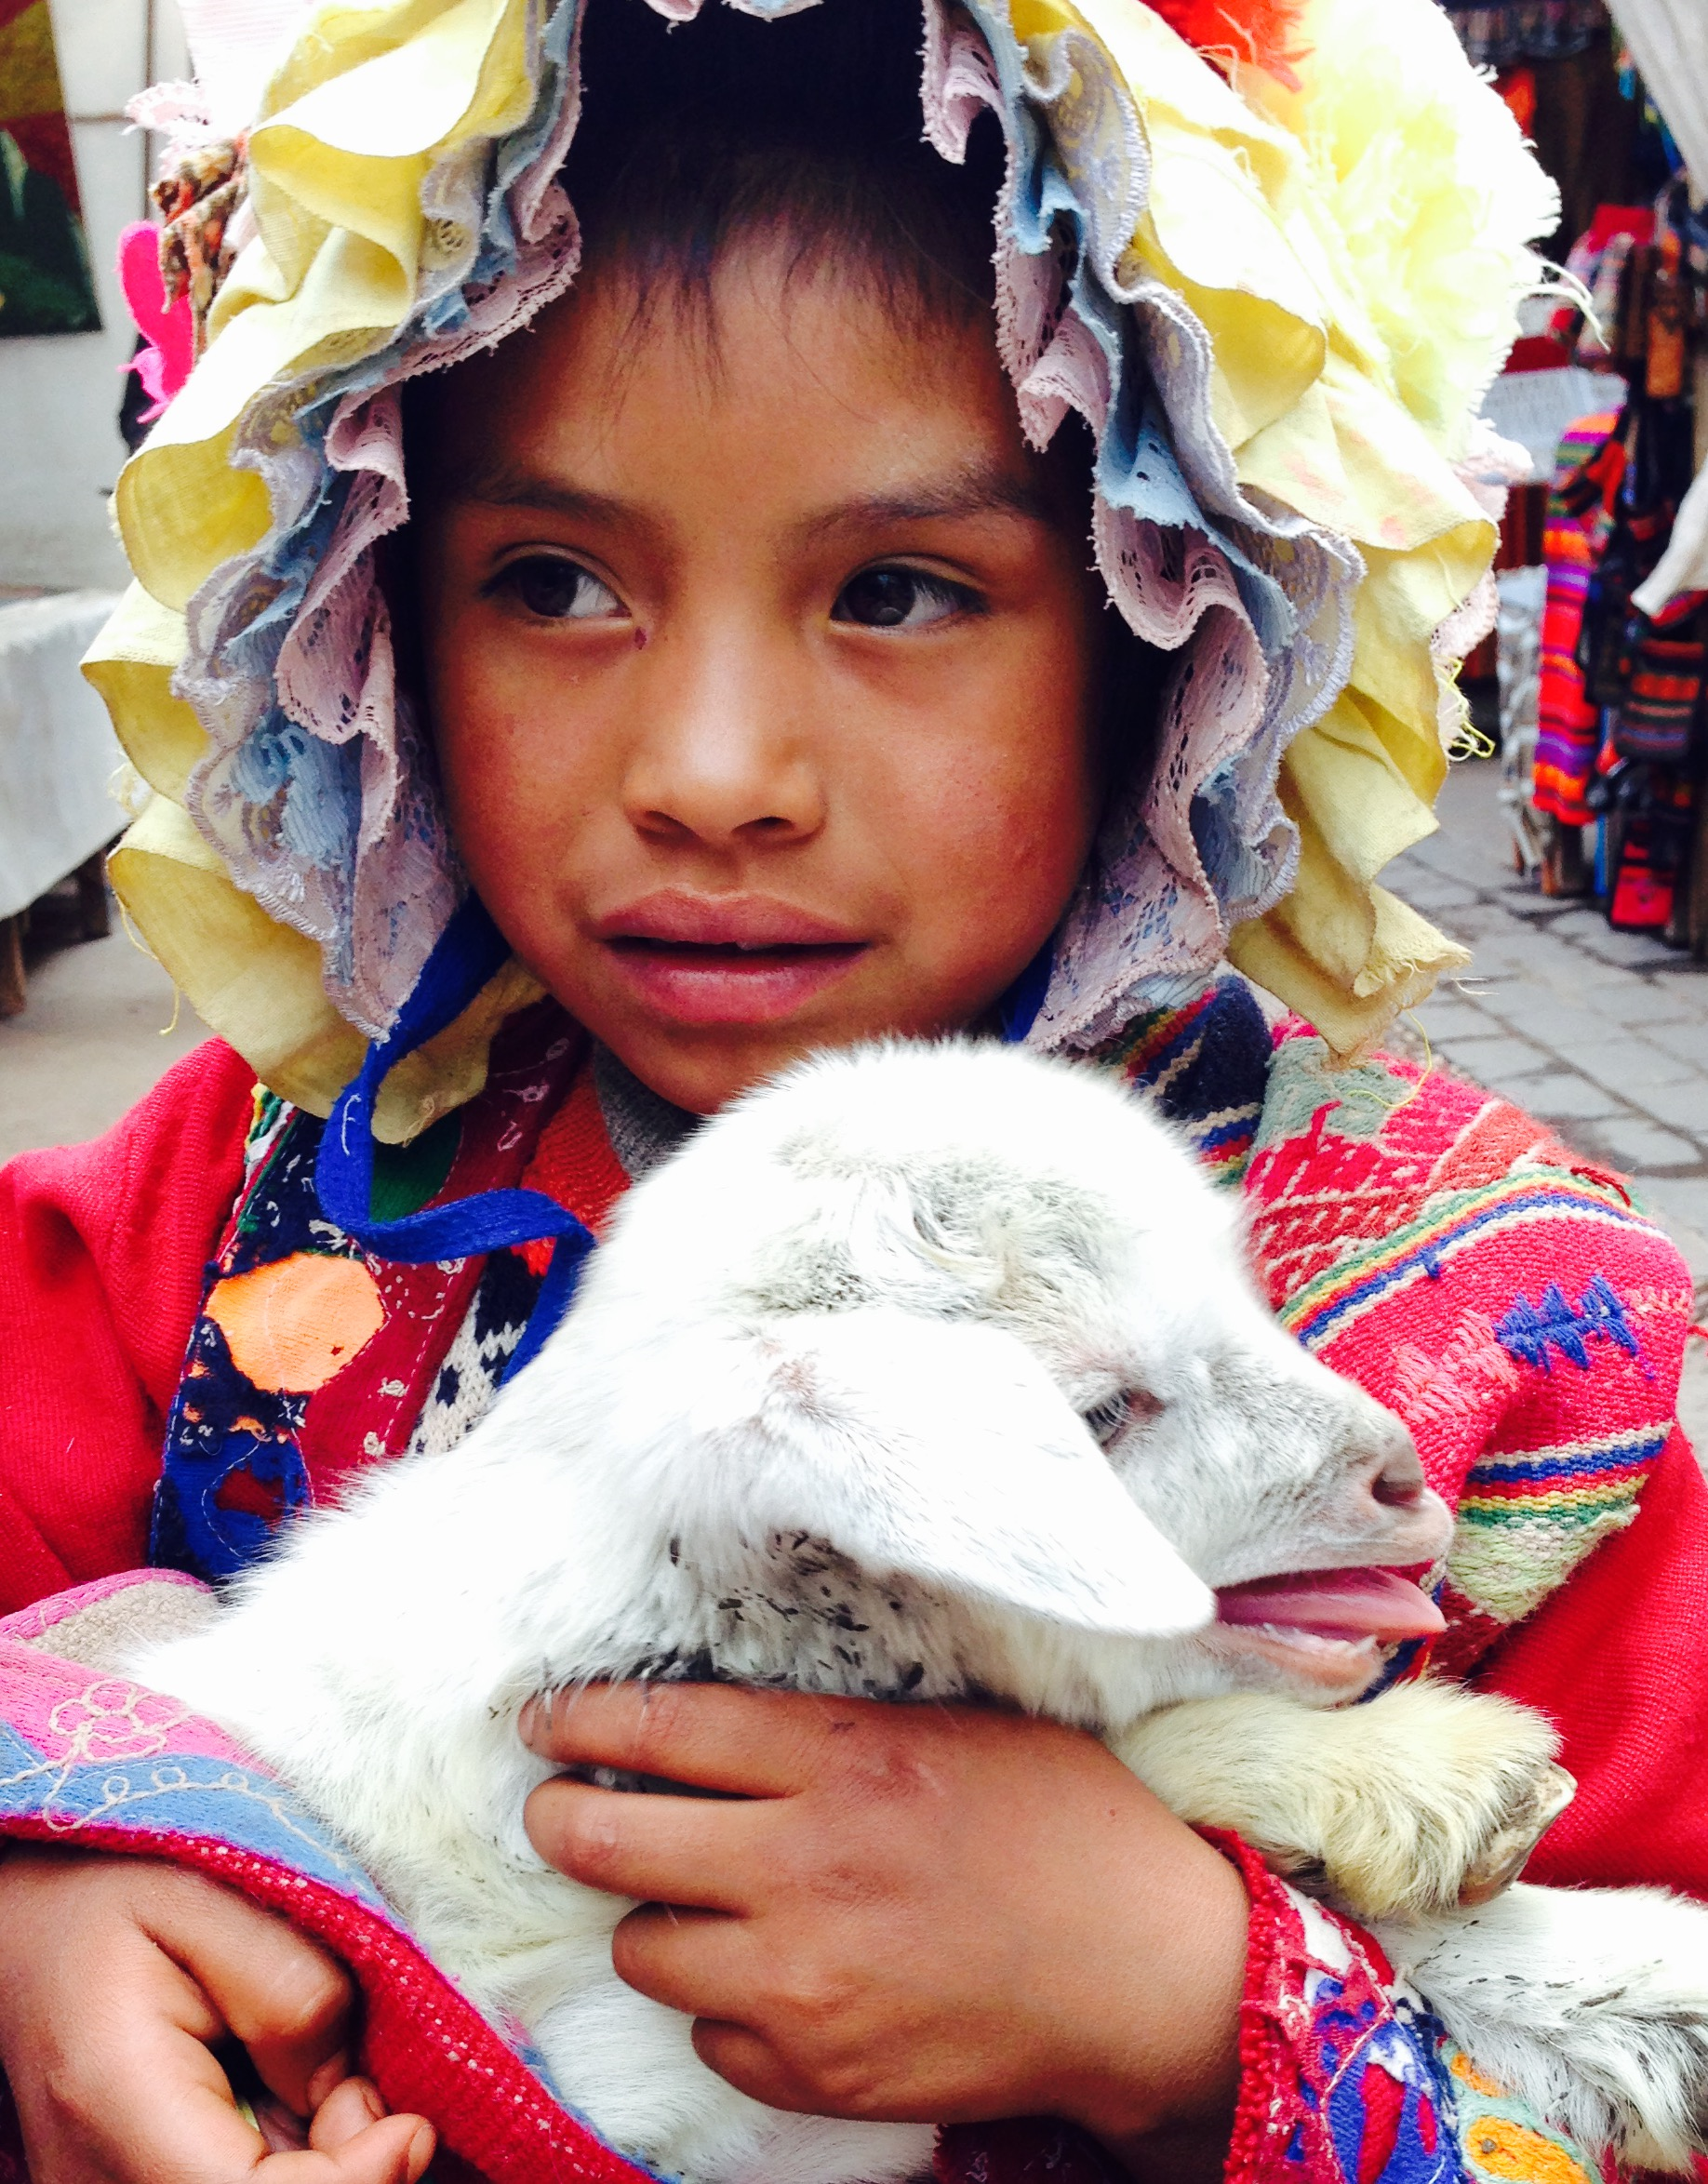 Local girl with lamb, Cusco Peru - 3 Days*